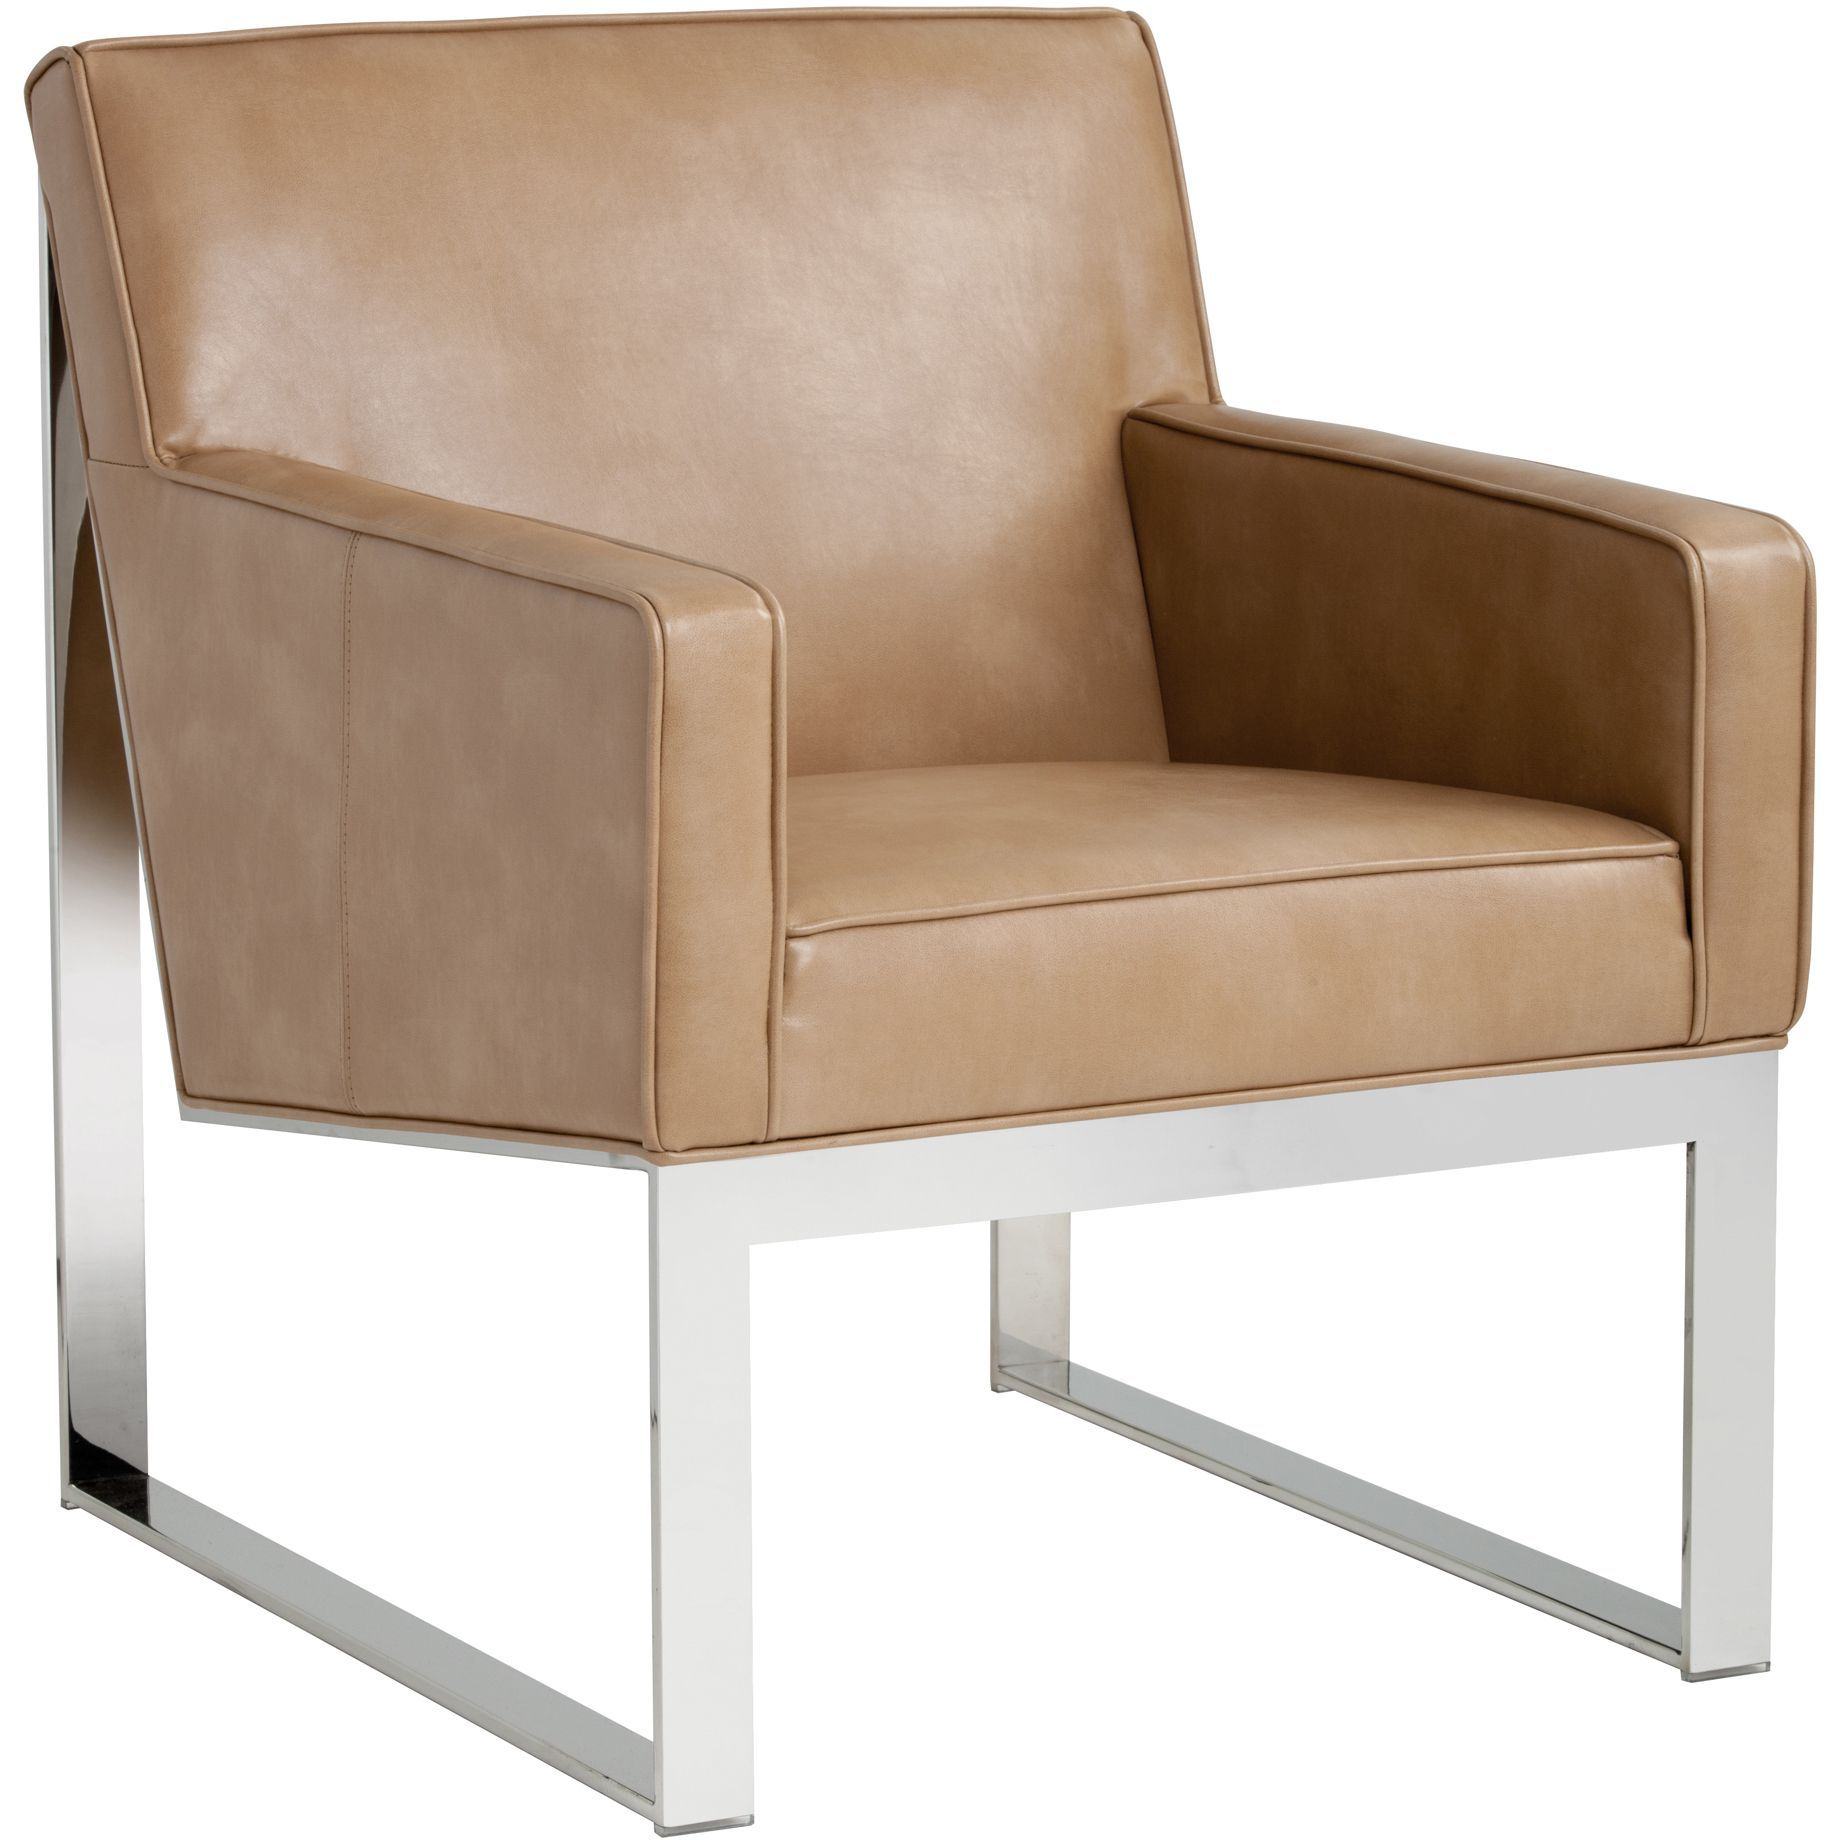 Sunpan 'club' Sheldon Leather Armchair | Products | Pinterest Inside Sheldon Oversized Sofa Chairs (View 9 of 25)